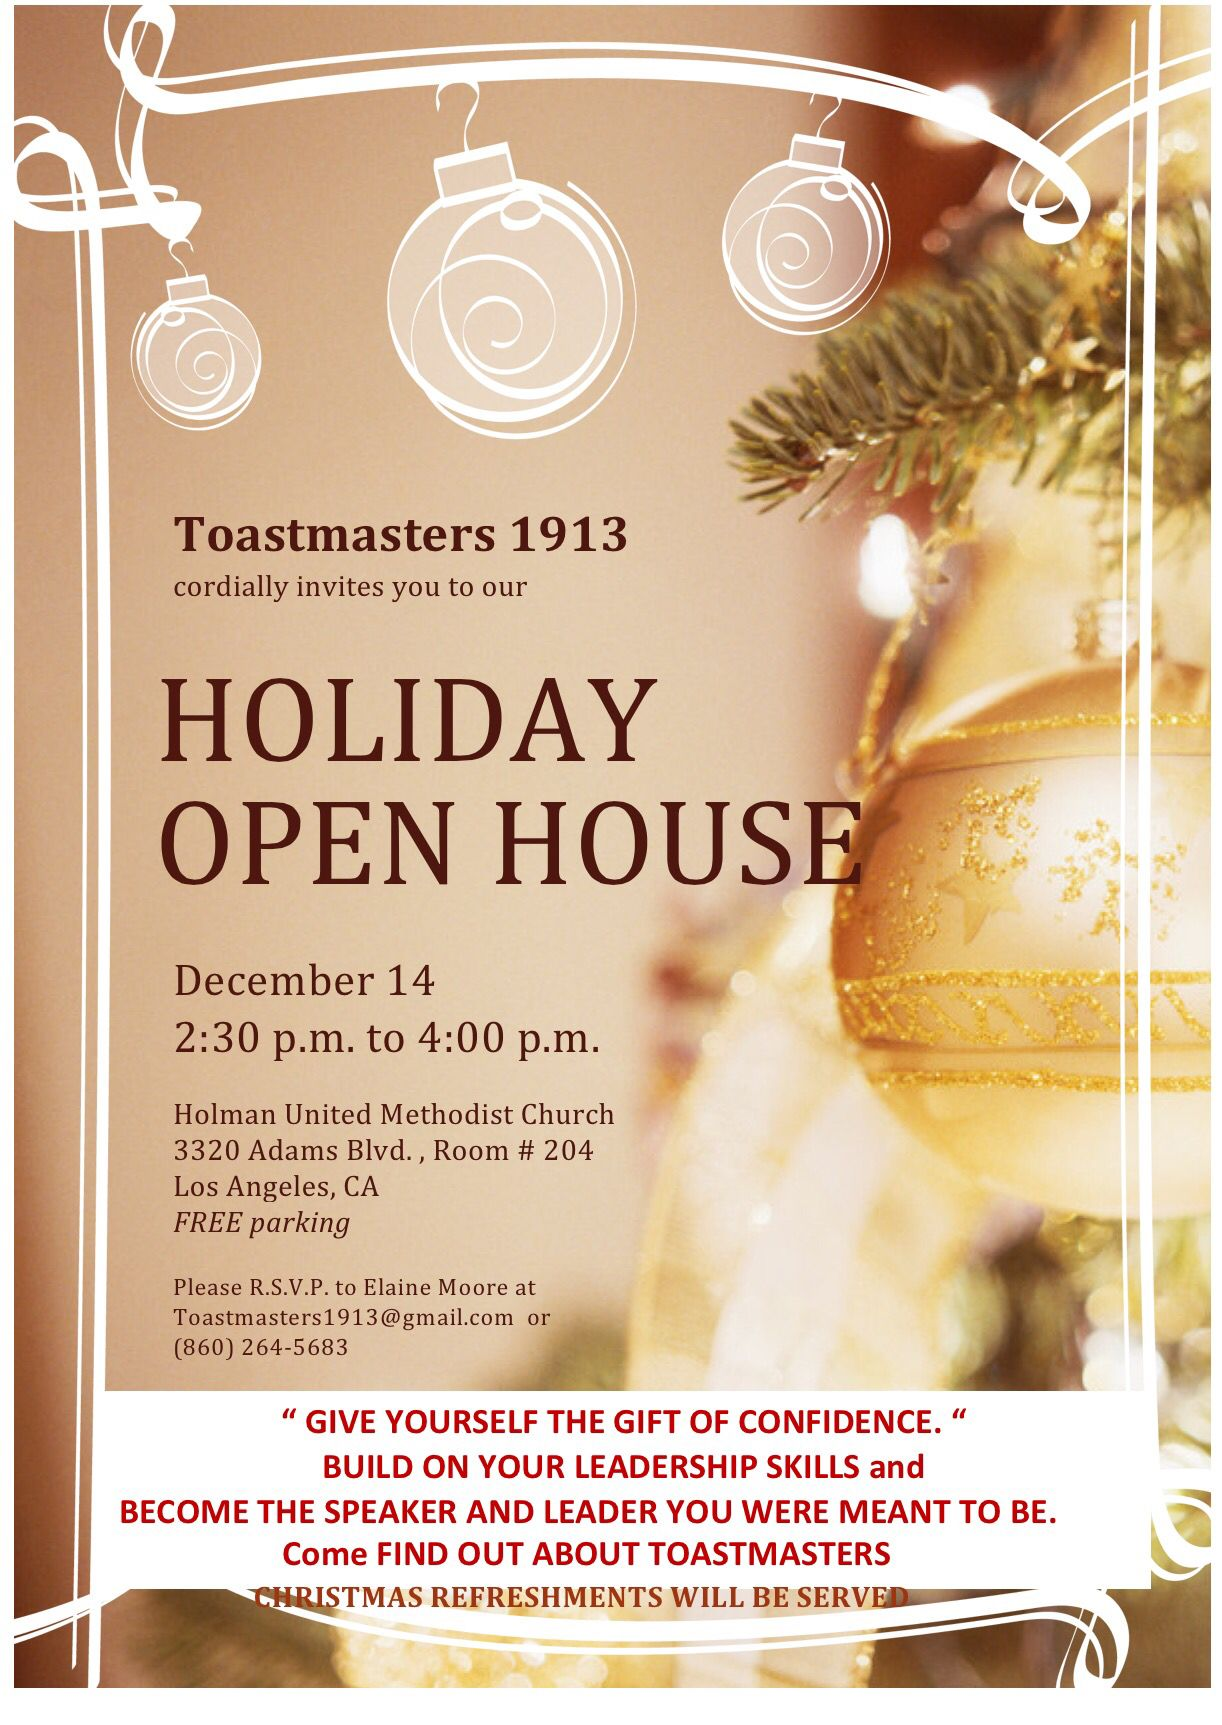 You Re Invited To A Holiday Open House Hosted By Toastmasters 1913 Open House Holiday Free Park